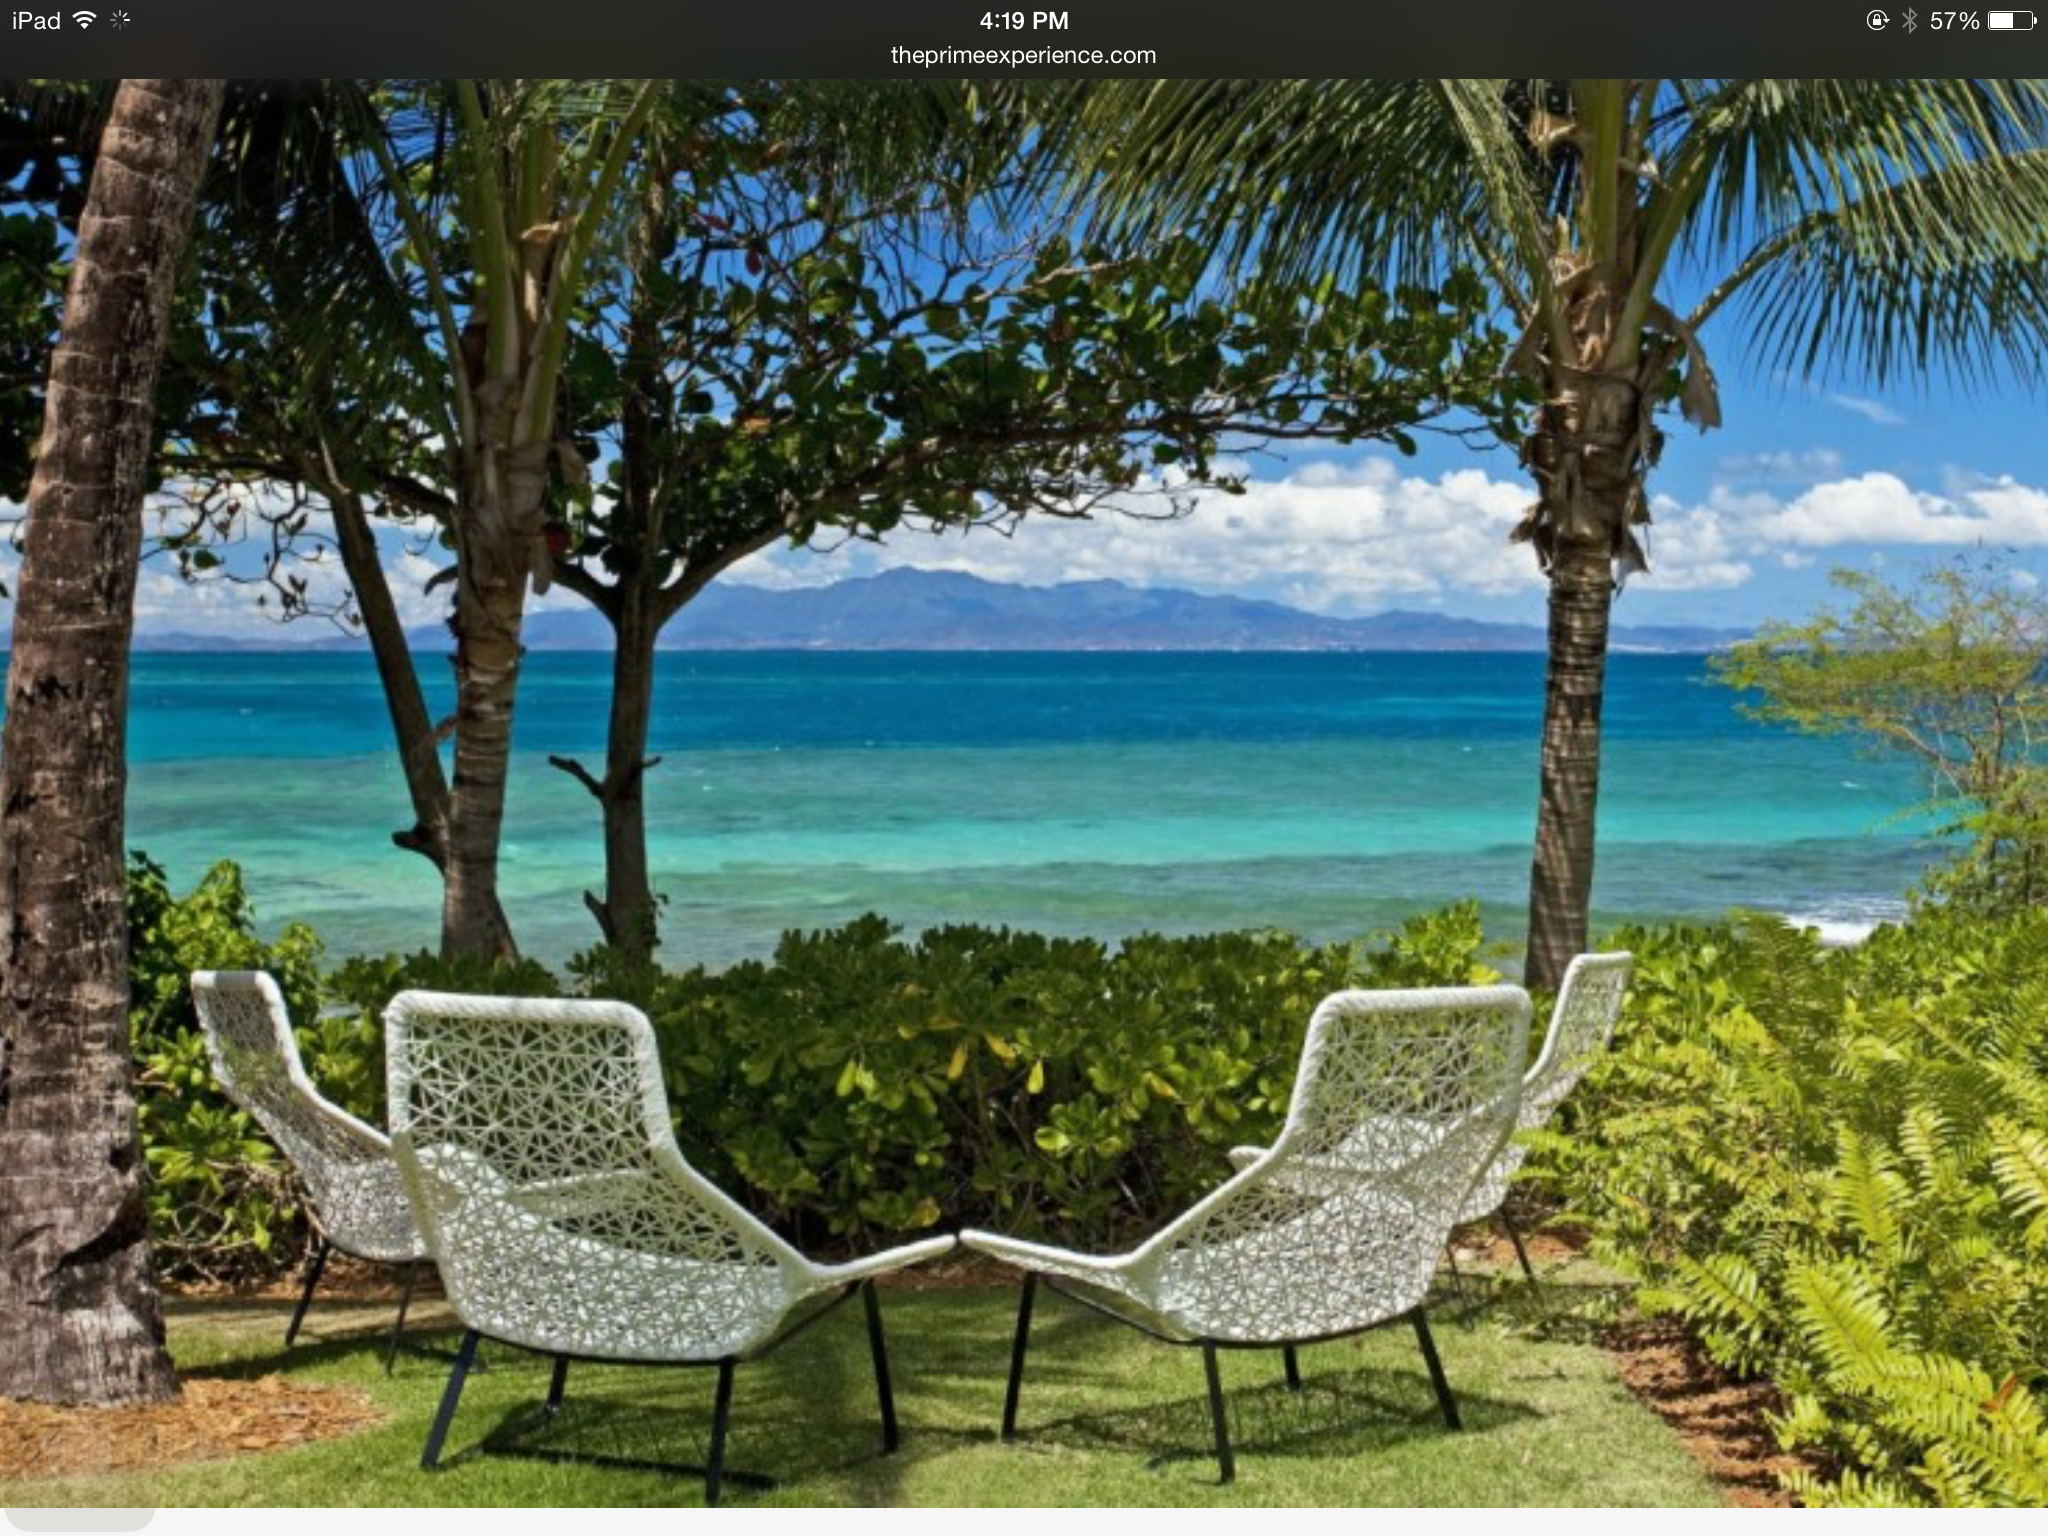 Pin by Thephotofestival on sitting outside Vieques